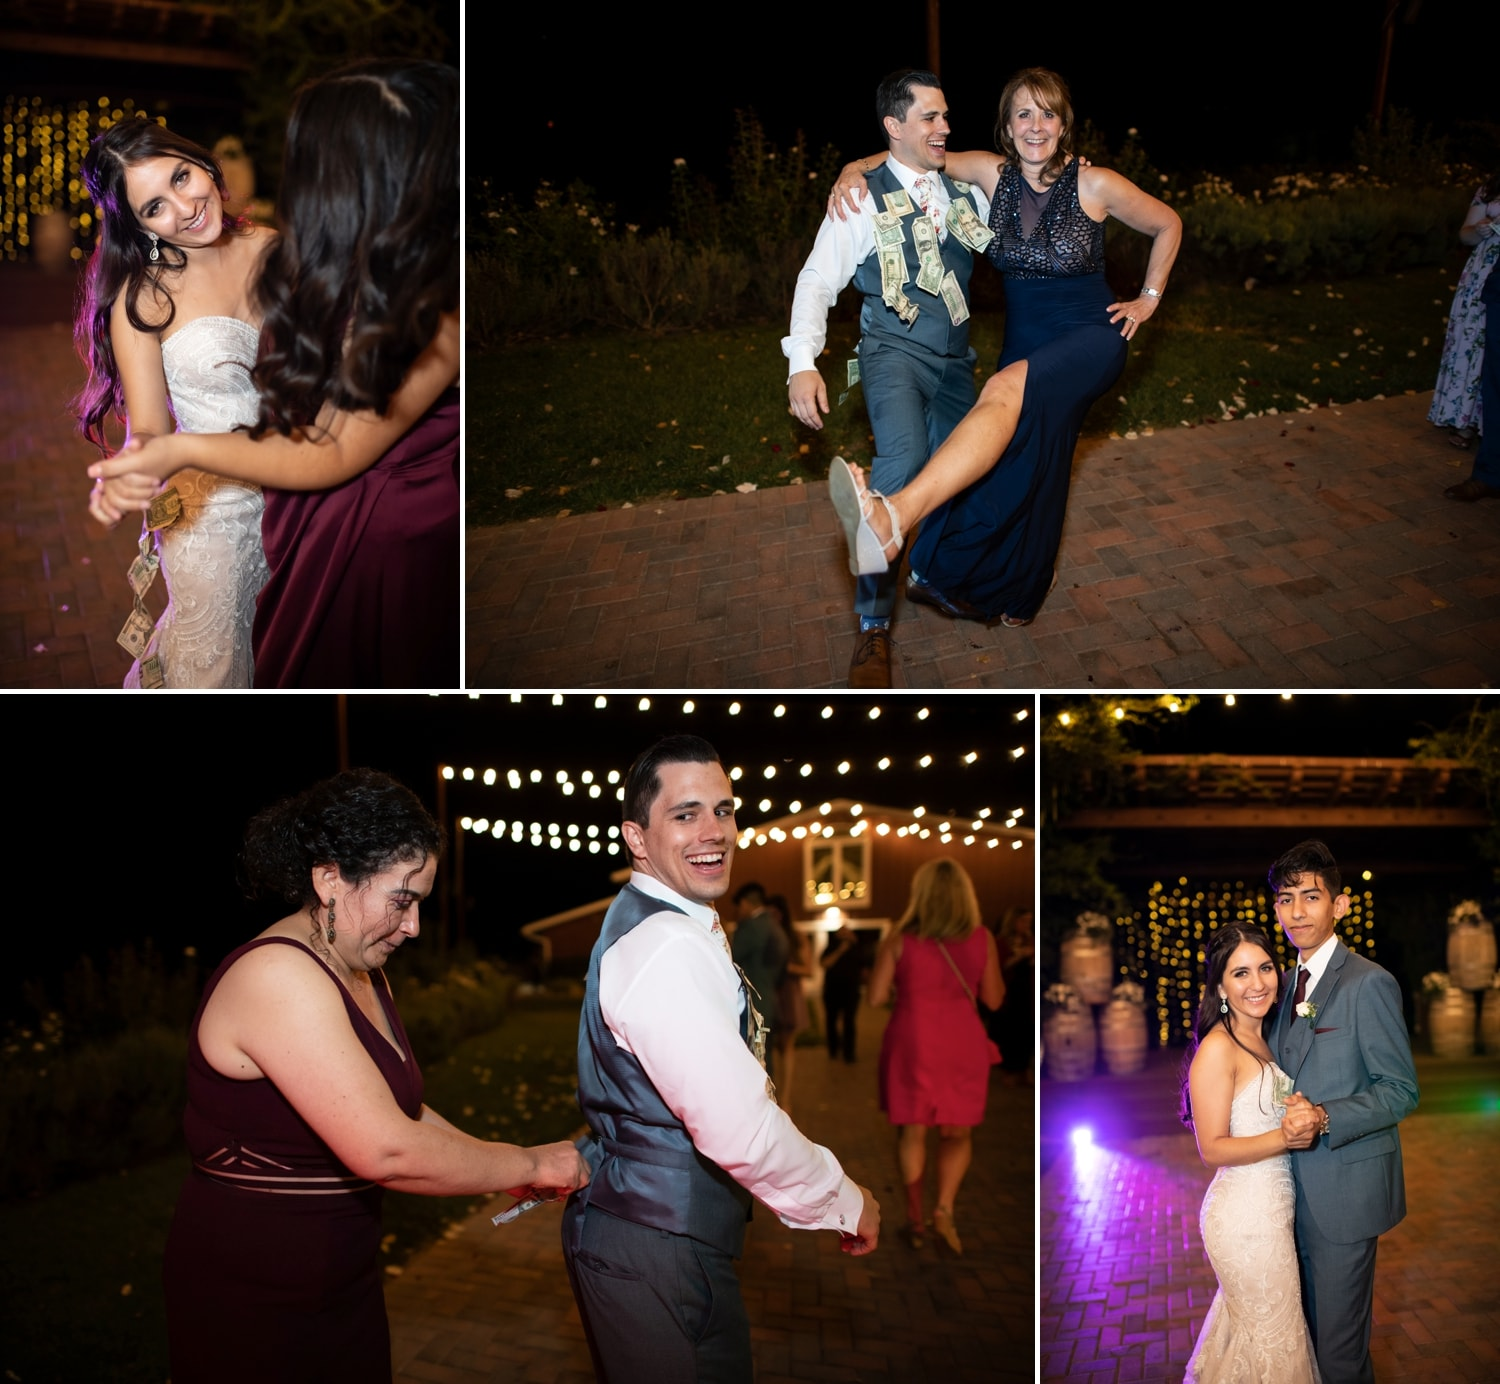 Bride and groom doing a money dance at their Lorimar Winery wedding.